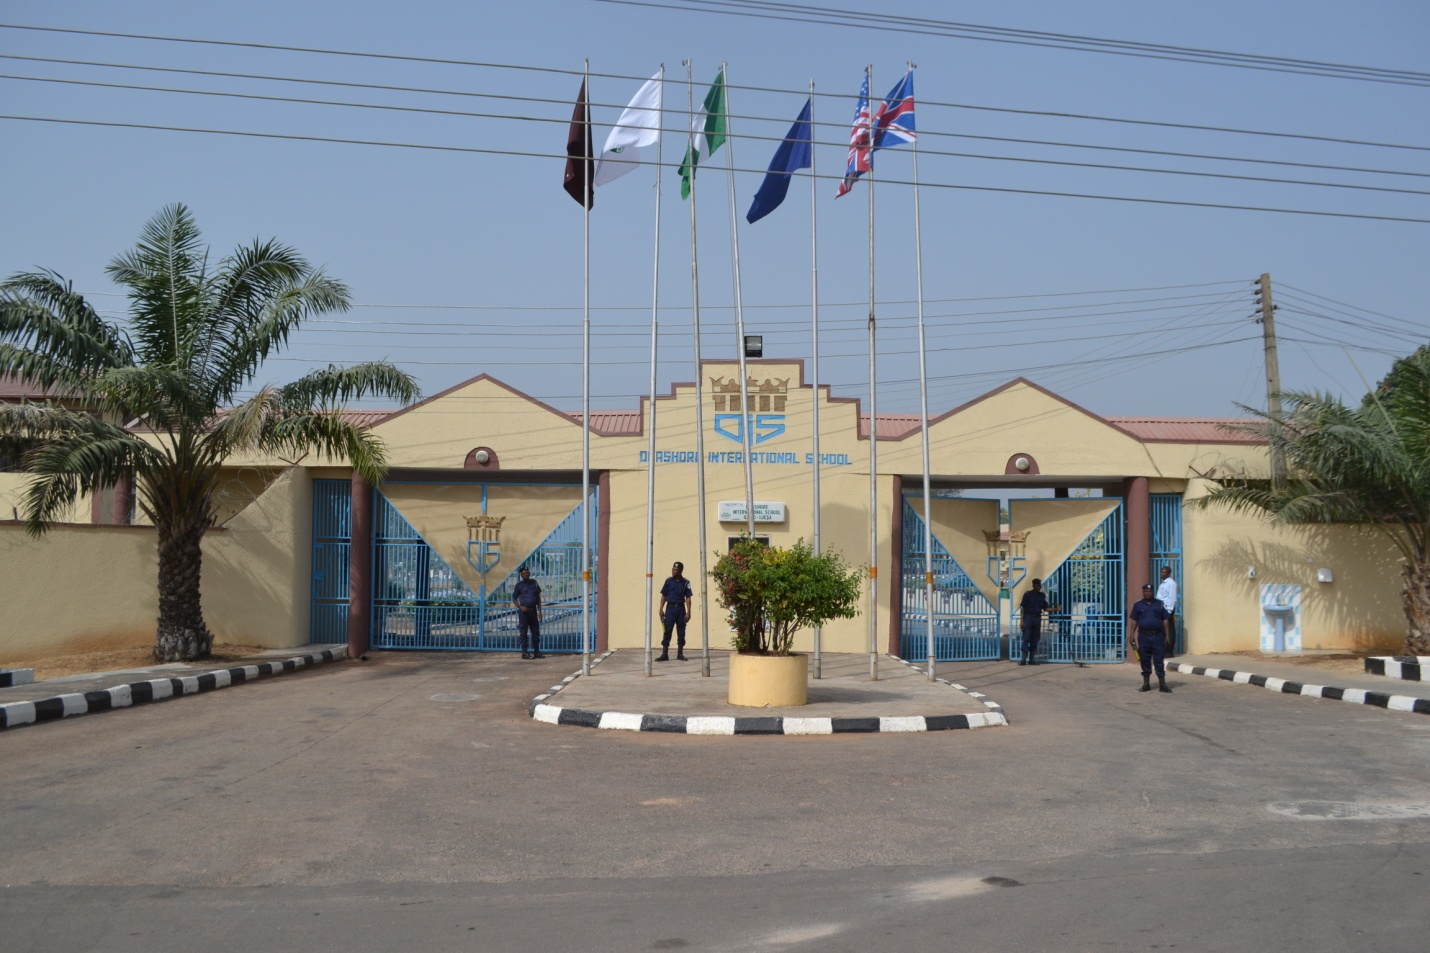 Entrance of the School